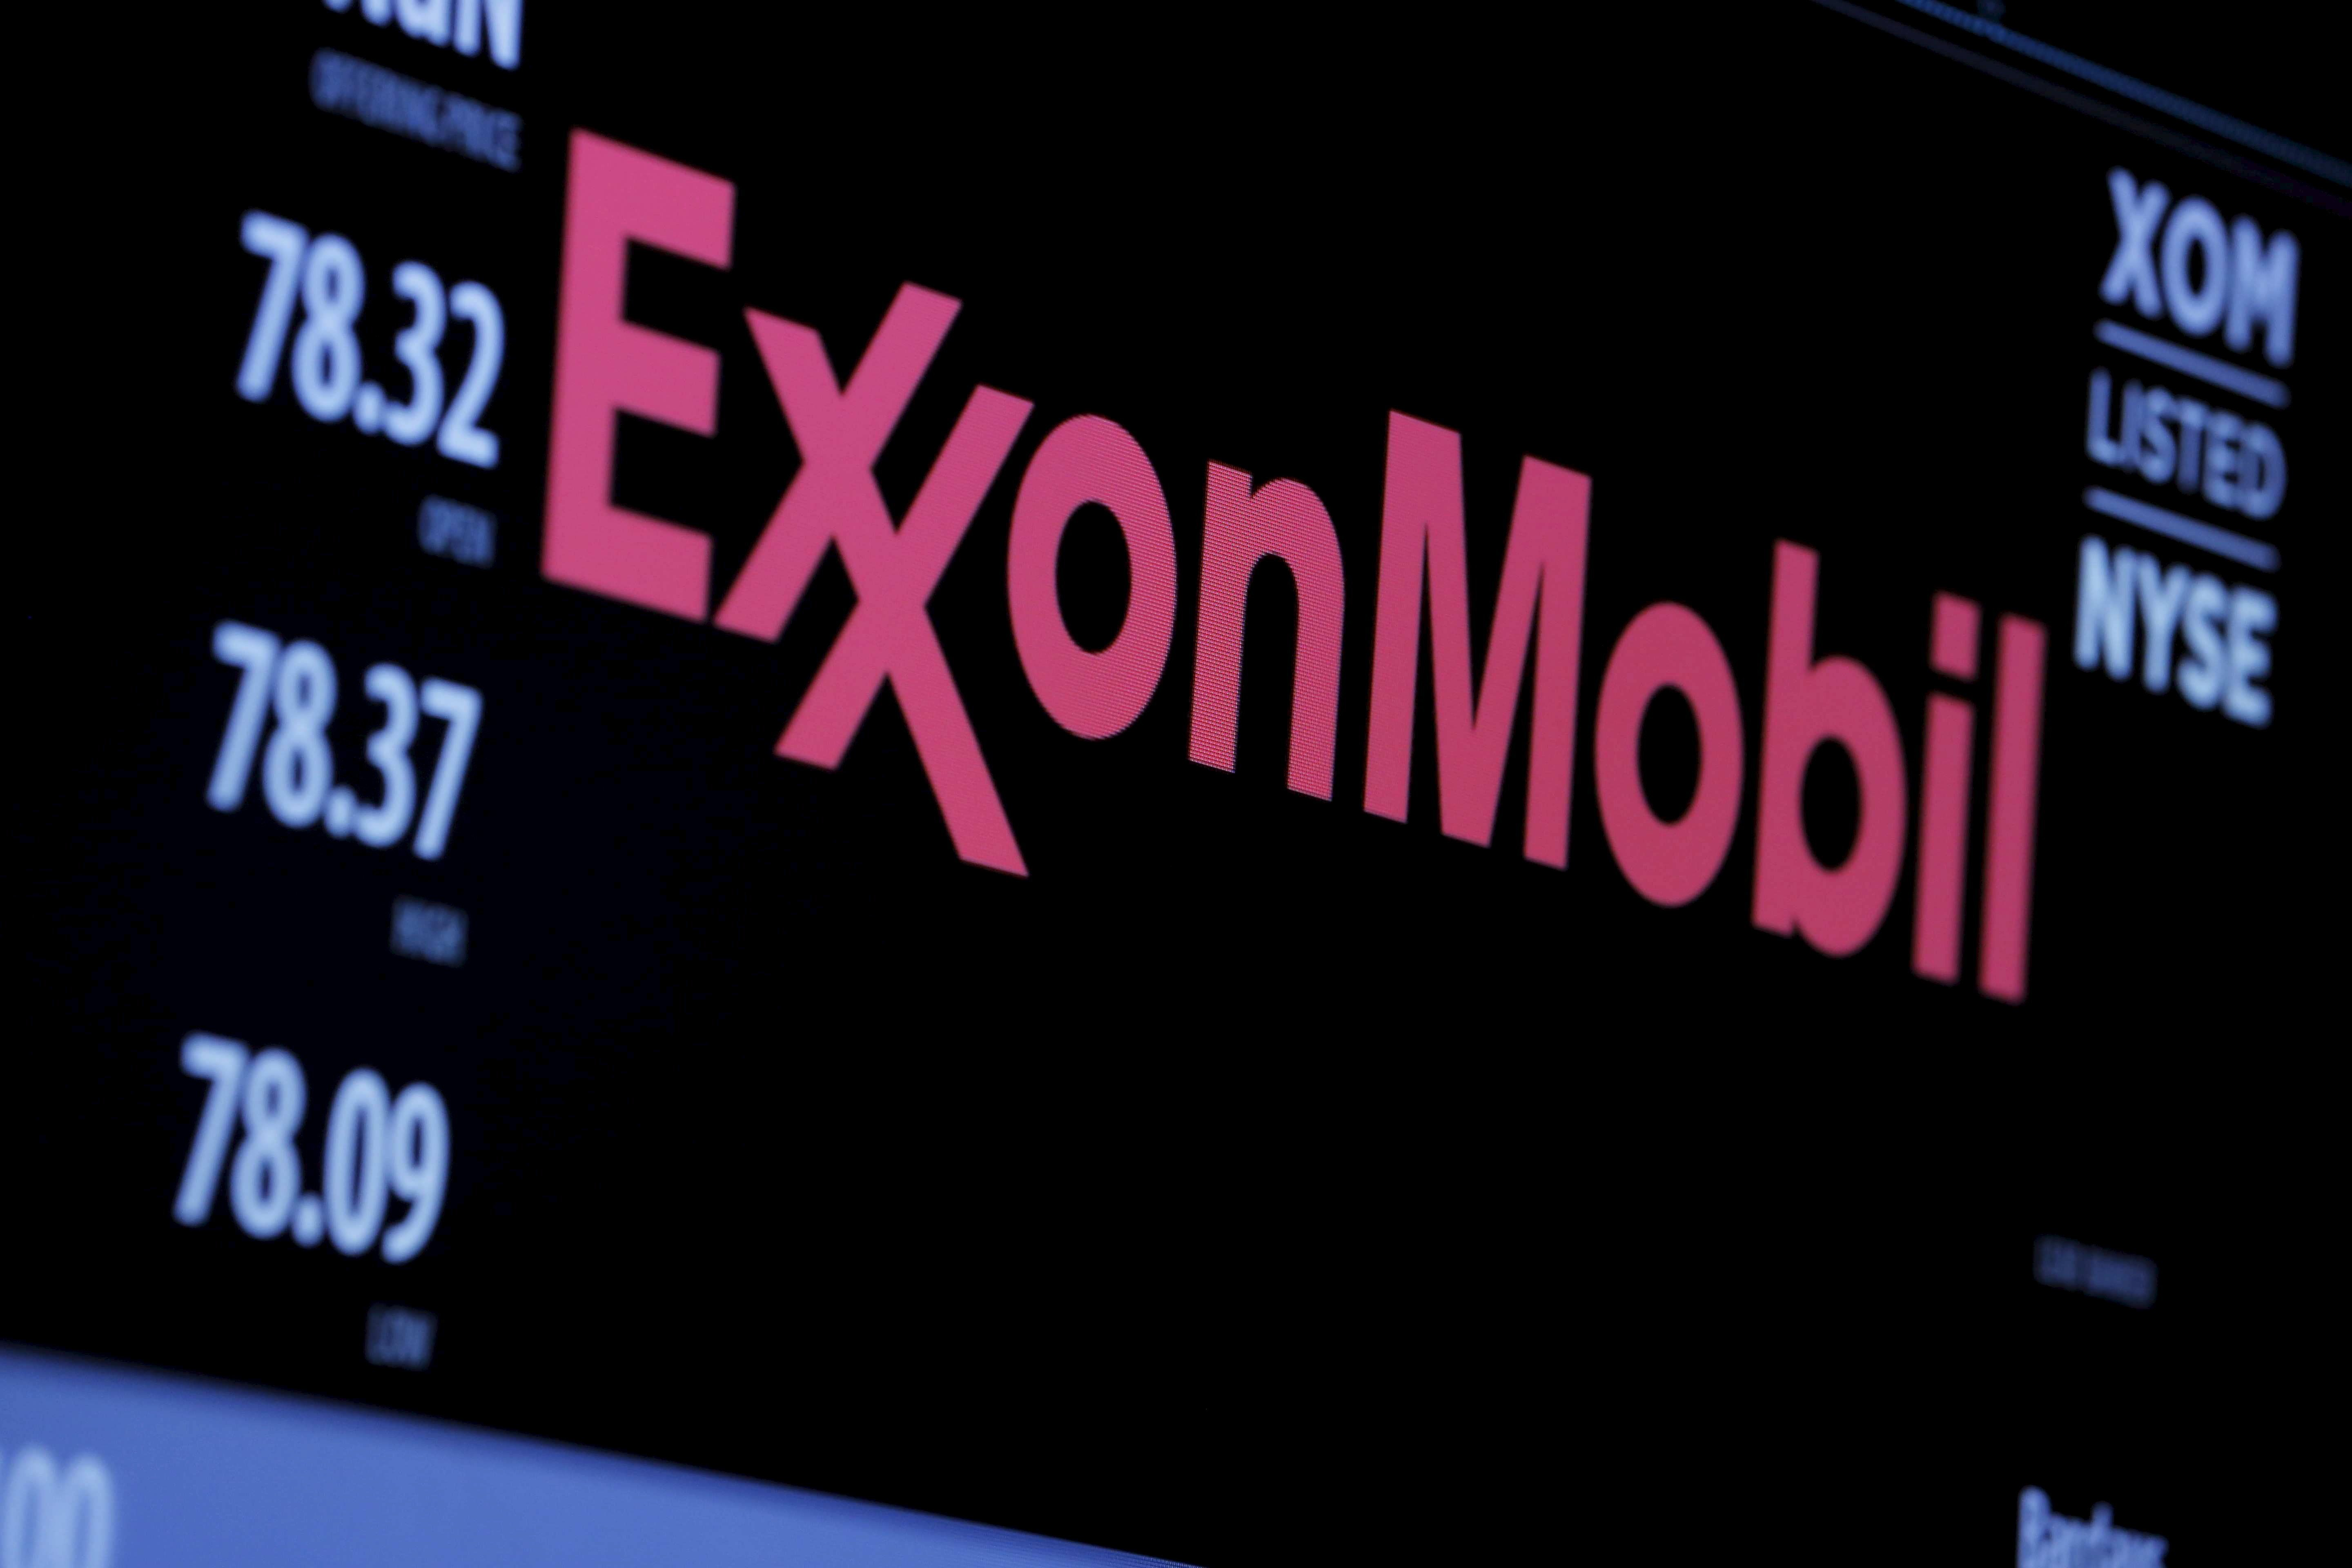 "The logo of Exxon Mobil Corporation is shown on a monitor above the floor of the New York Stock Exchange in New York, December 30, 2015. Standard & Poor's Ratings Services said on April 26, 2016, it had cut Exxon Mobil Corp's corporate credit rating to ""AA+"" from ""AAA,"" citing the impact of low oil prices. REUTERS/Lucas Jackson/File Photo      TPX IMAGES OF THE DAY"